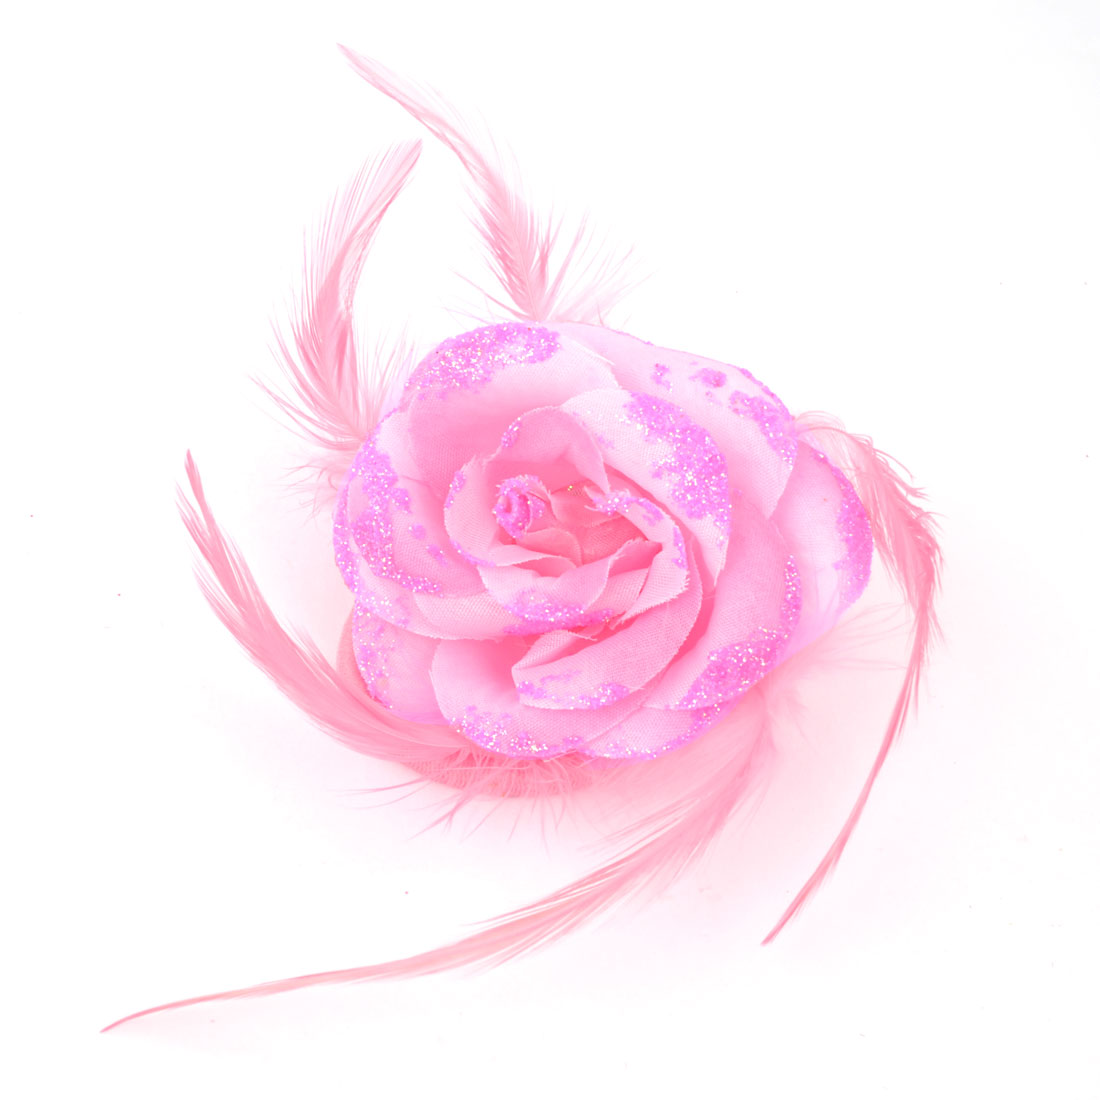 Women Party Pink Glitter Fabric Floral Feather Detailing Elastic Hairband Brooch